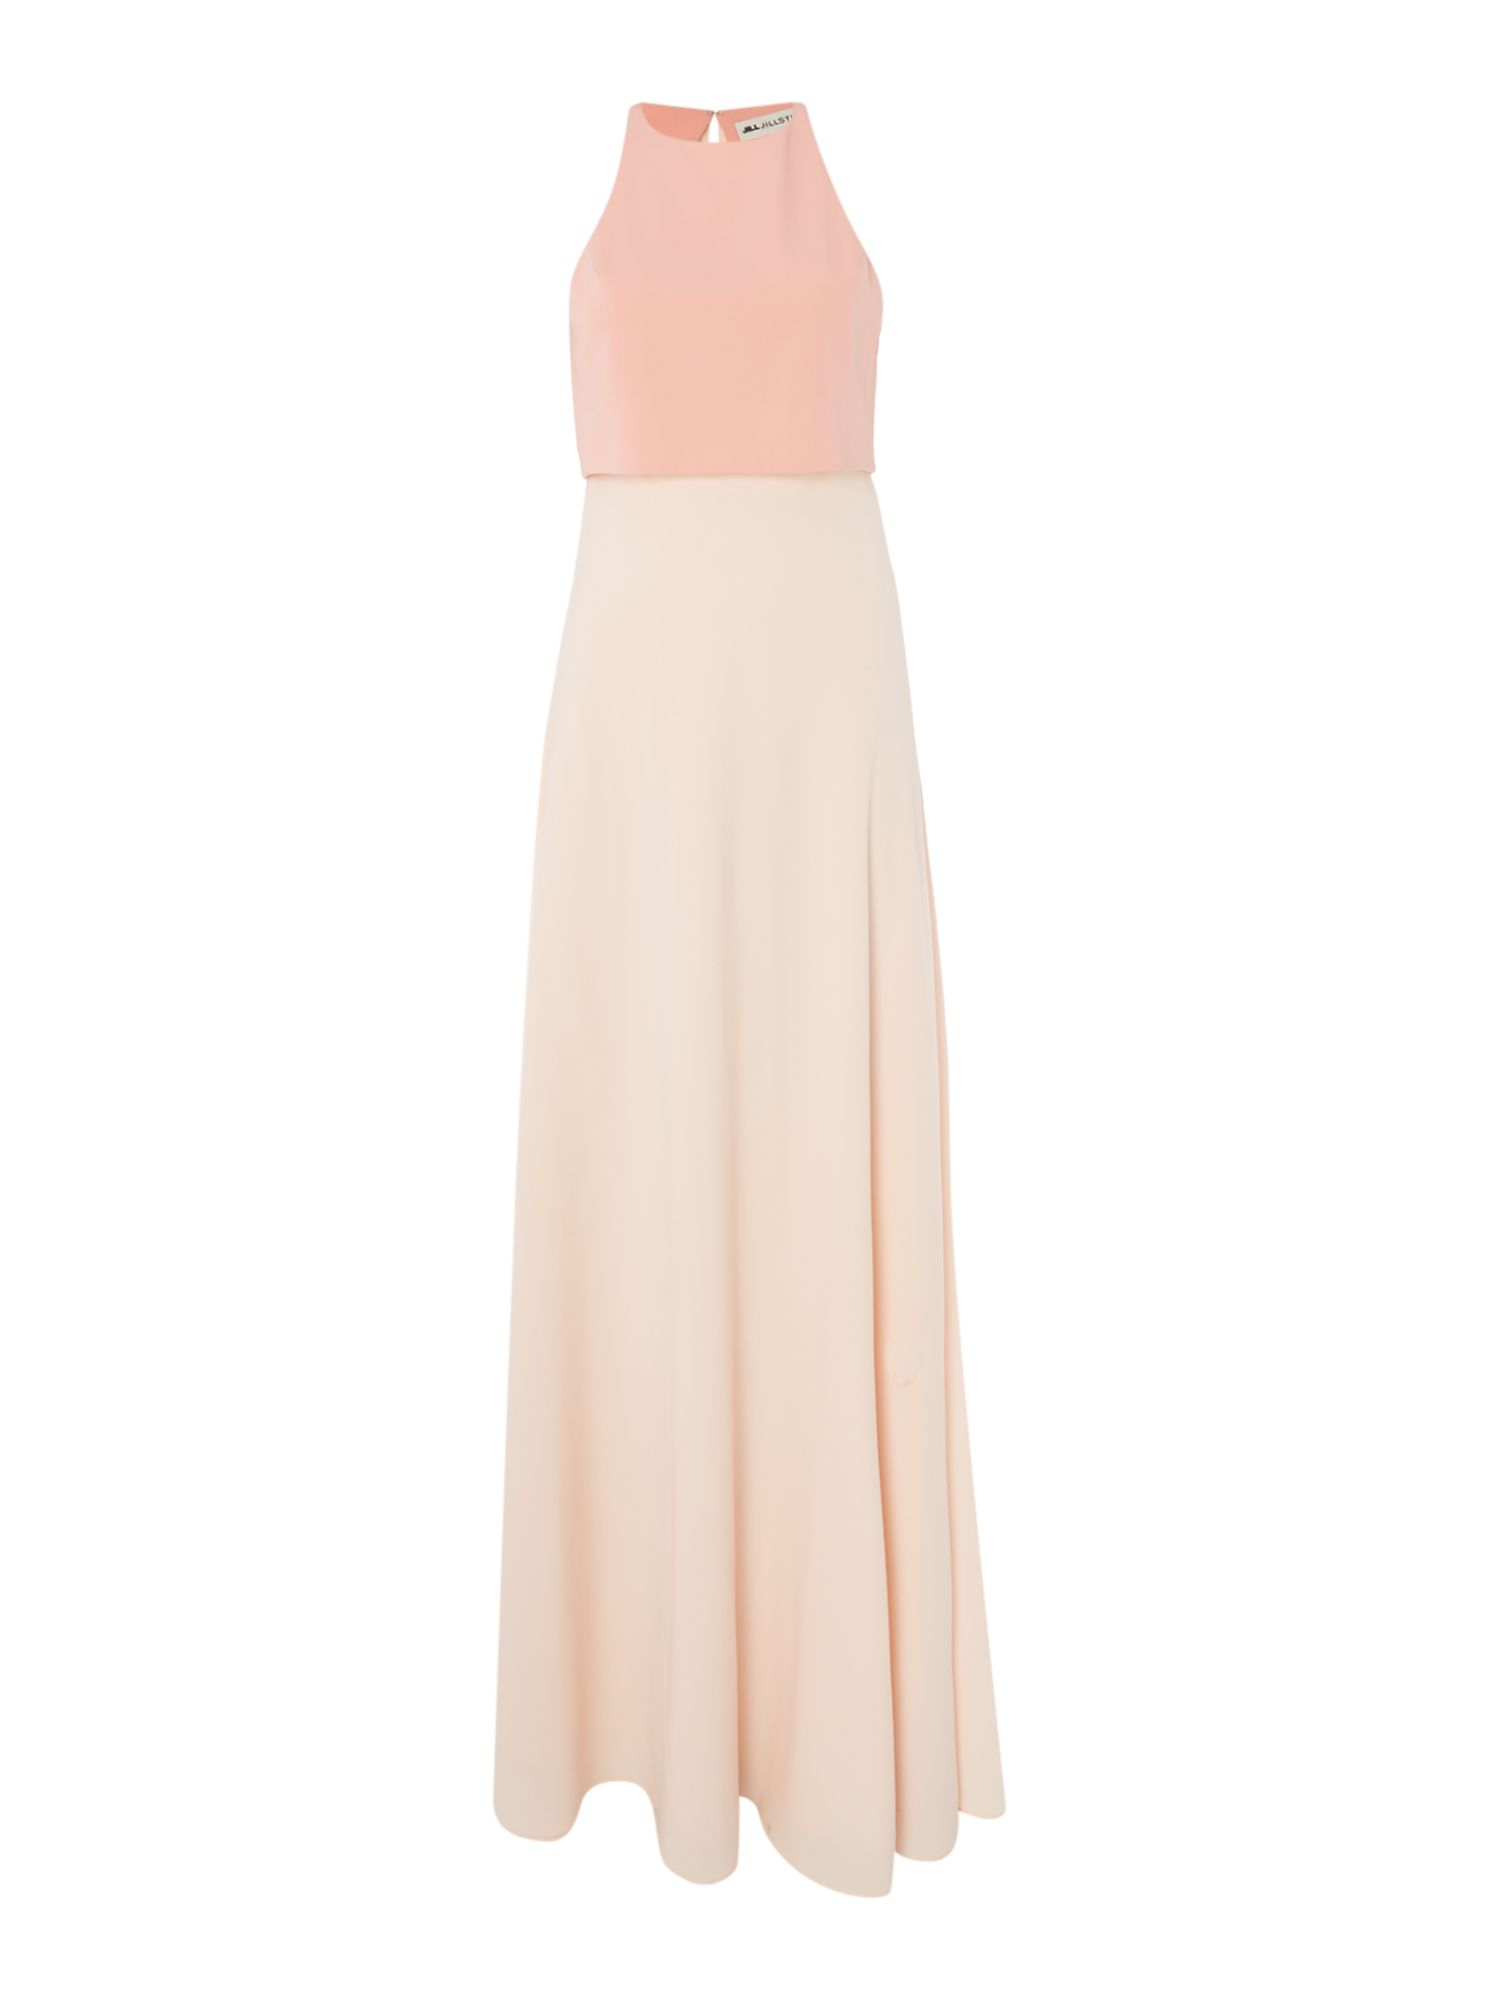 Jill Jill Stuart Illusion crop top gown in colour block, Pink